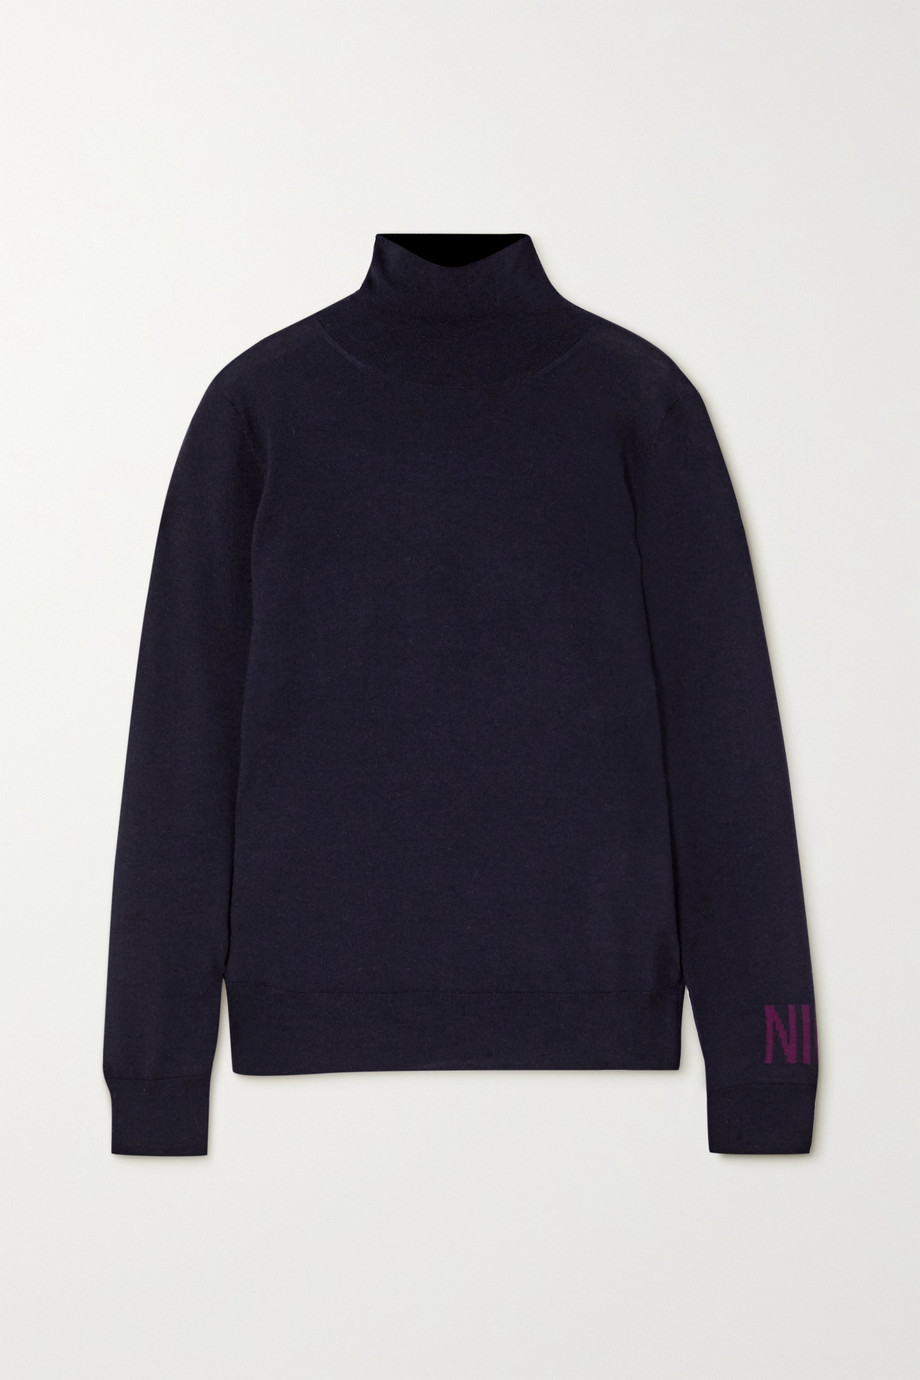 Nina Ricci Intarsia merino wool turtleneck sweater